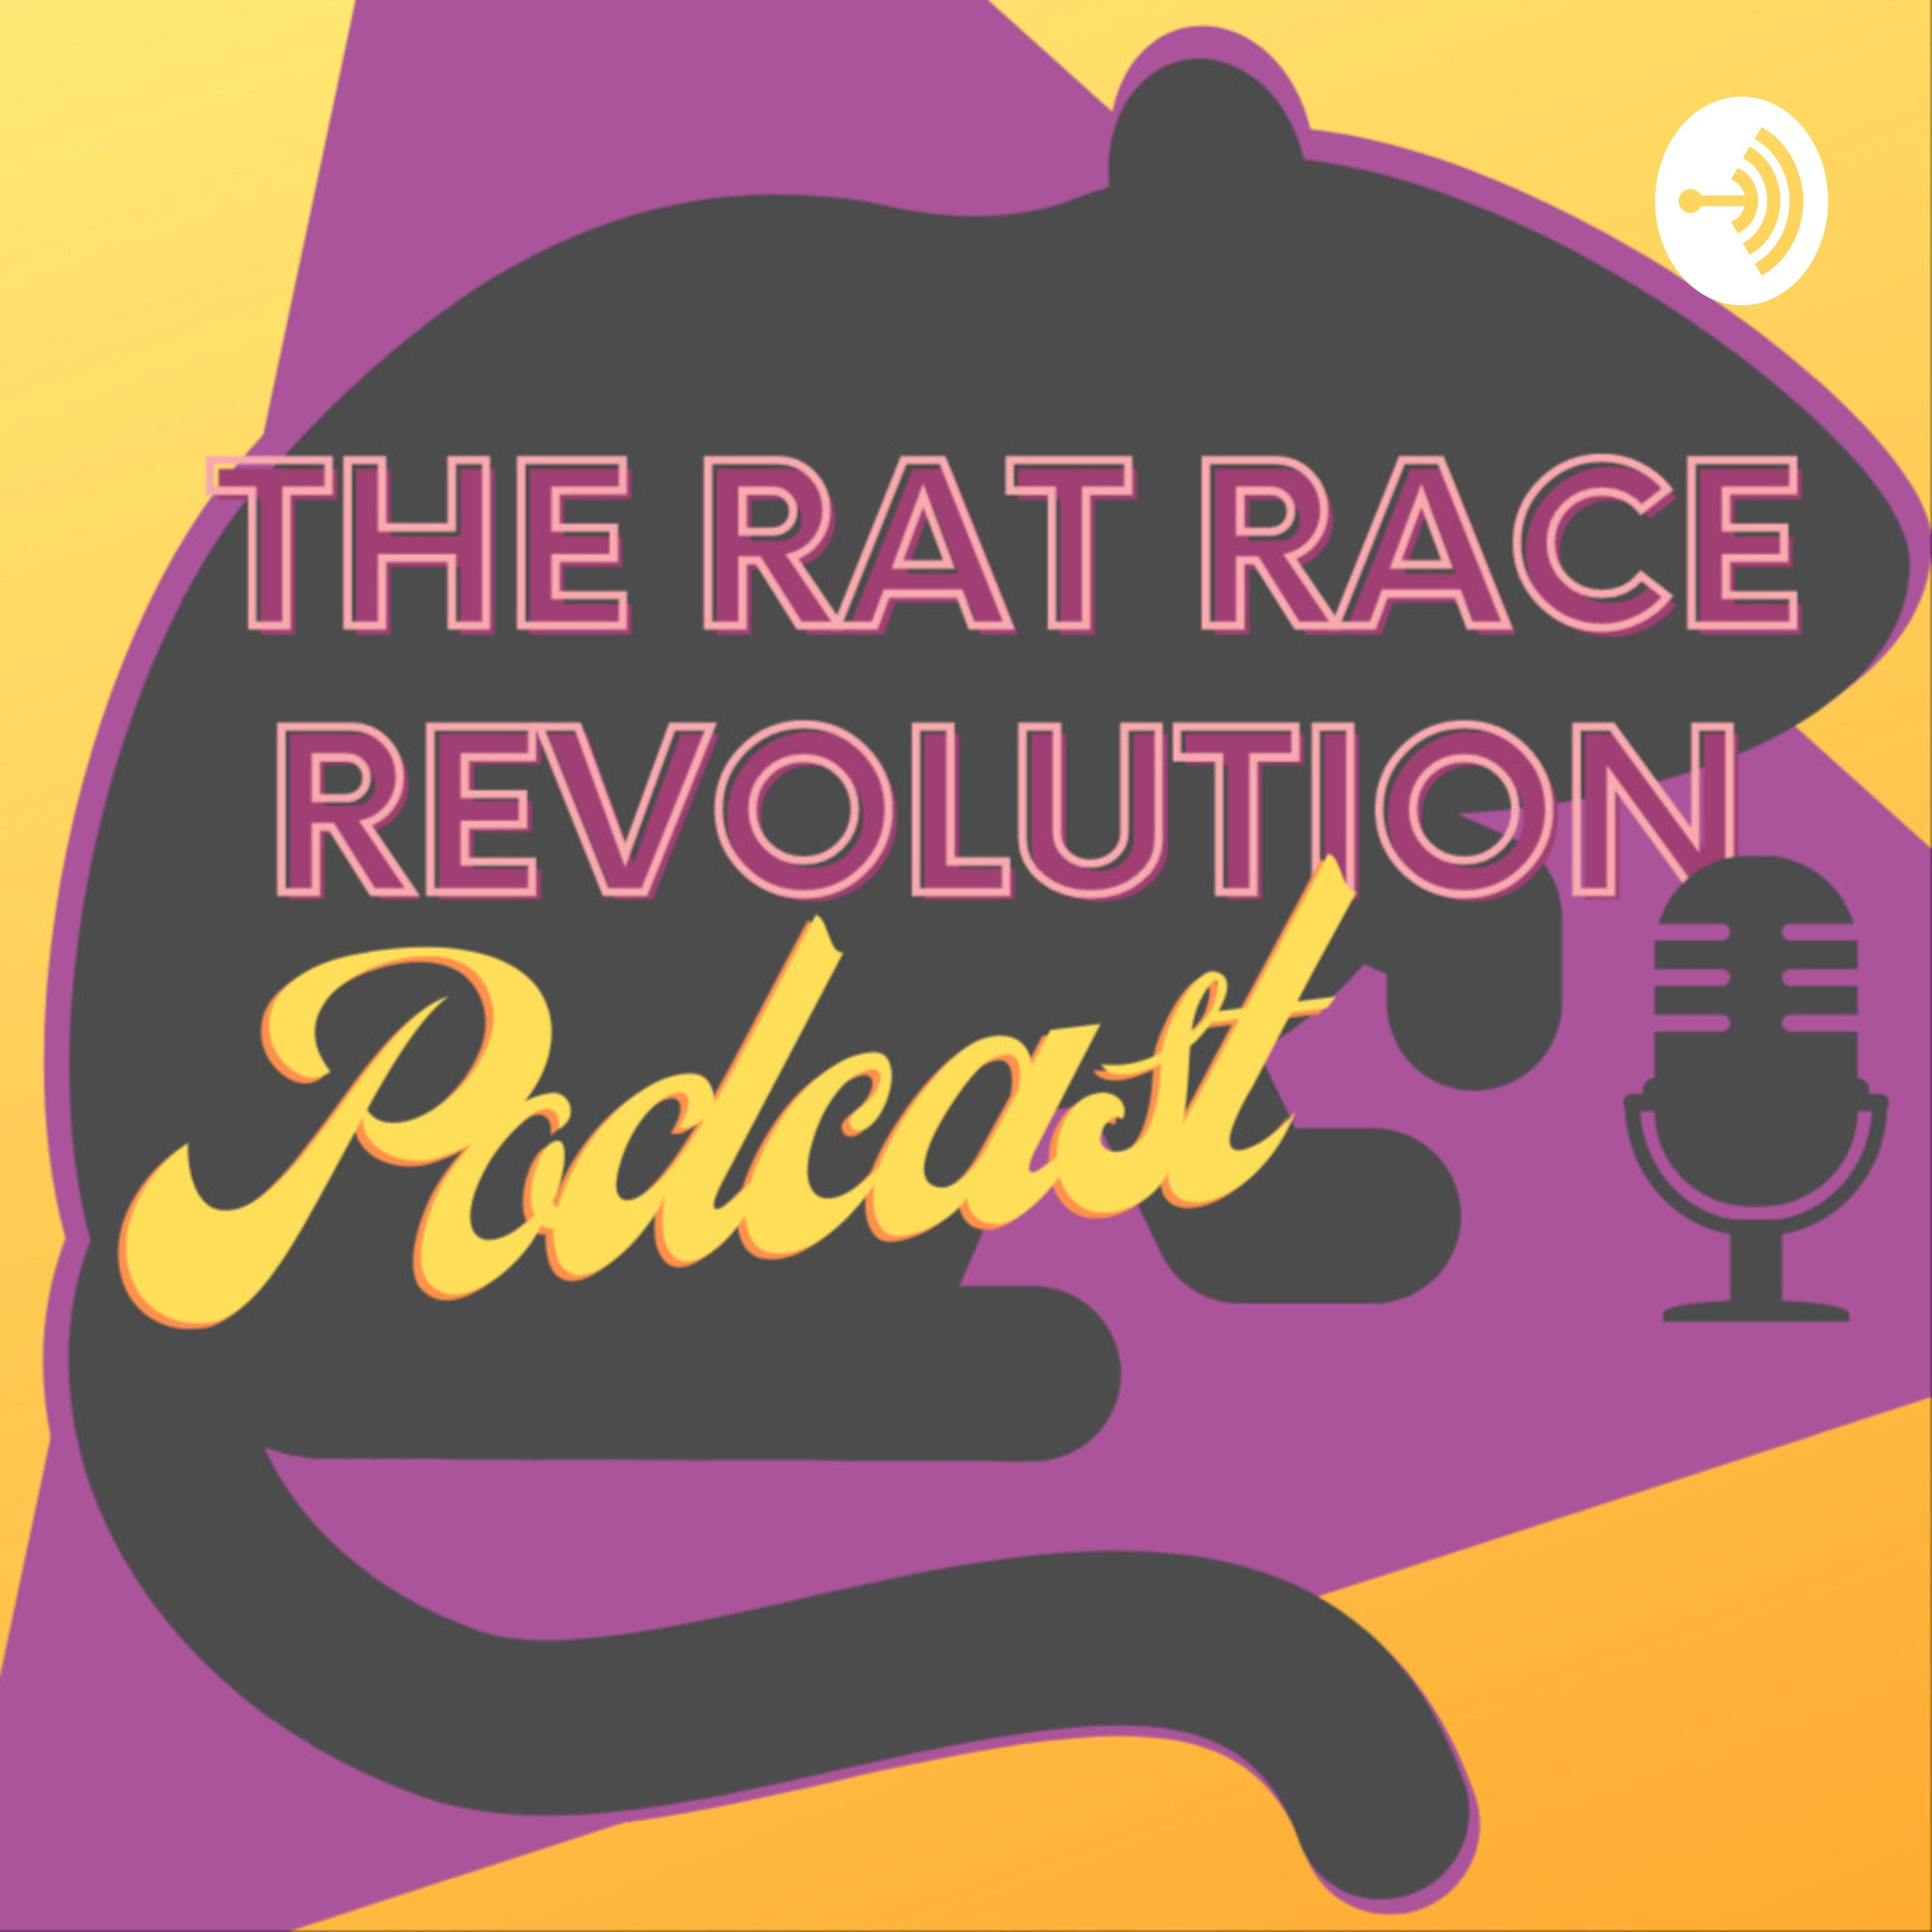 Episode #8: Brian Swan - The Unstoppable Surfer with an Unstoppable Appetite for Life (Rat Race Revolution Podcast)